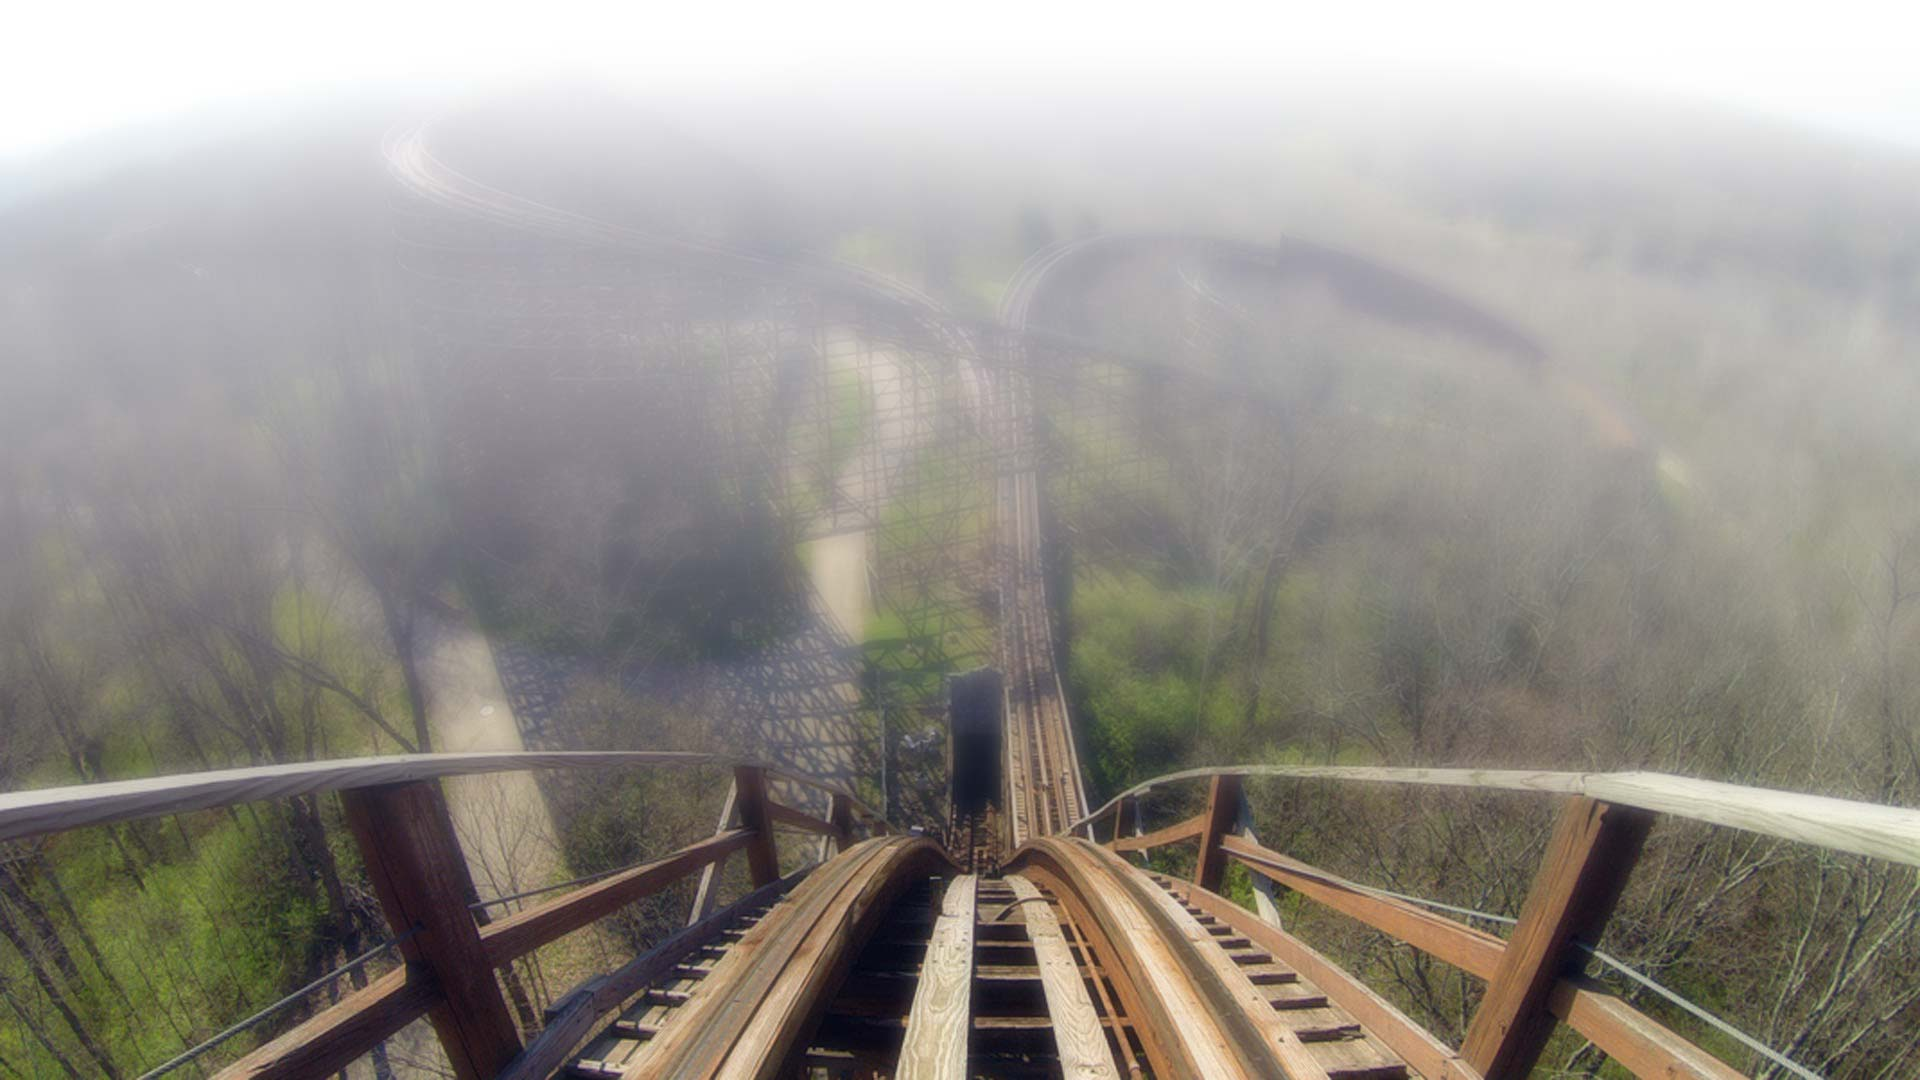 Roller-coaster-down-view blurred - Lewy Body Dementia